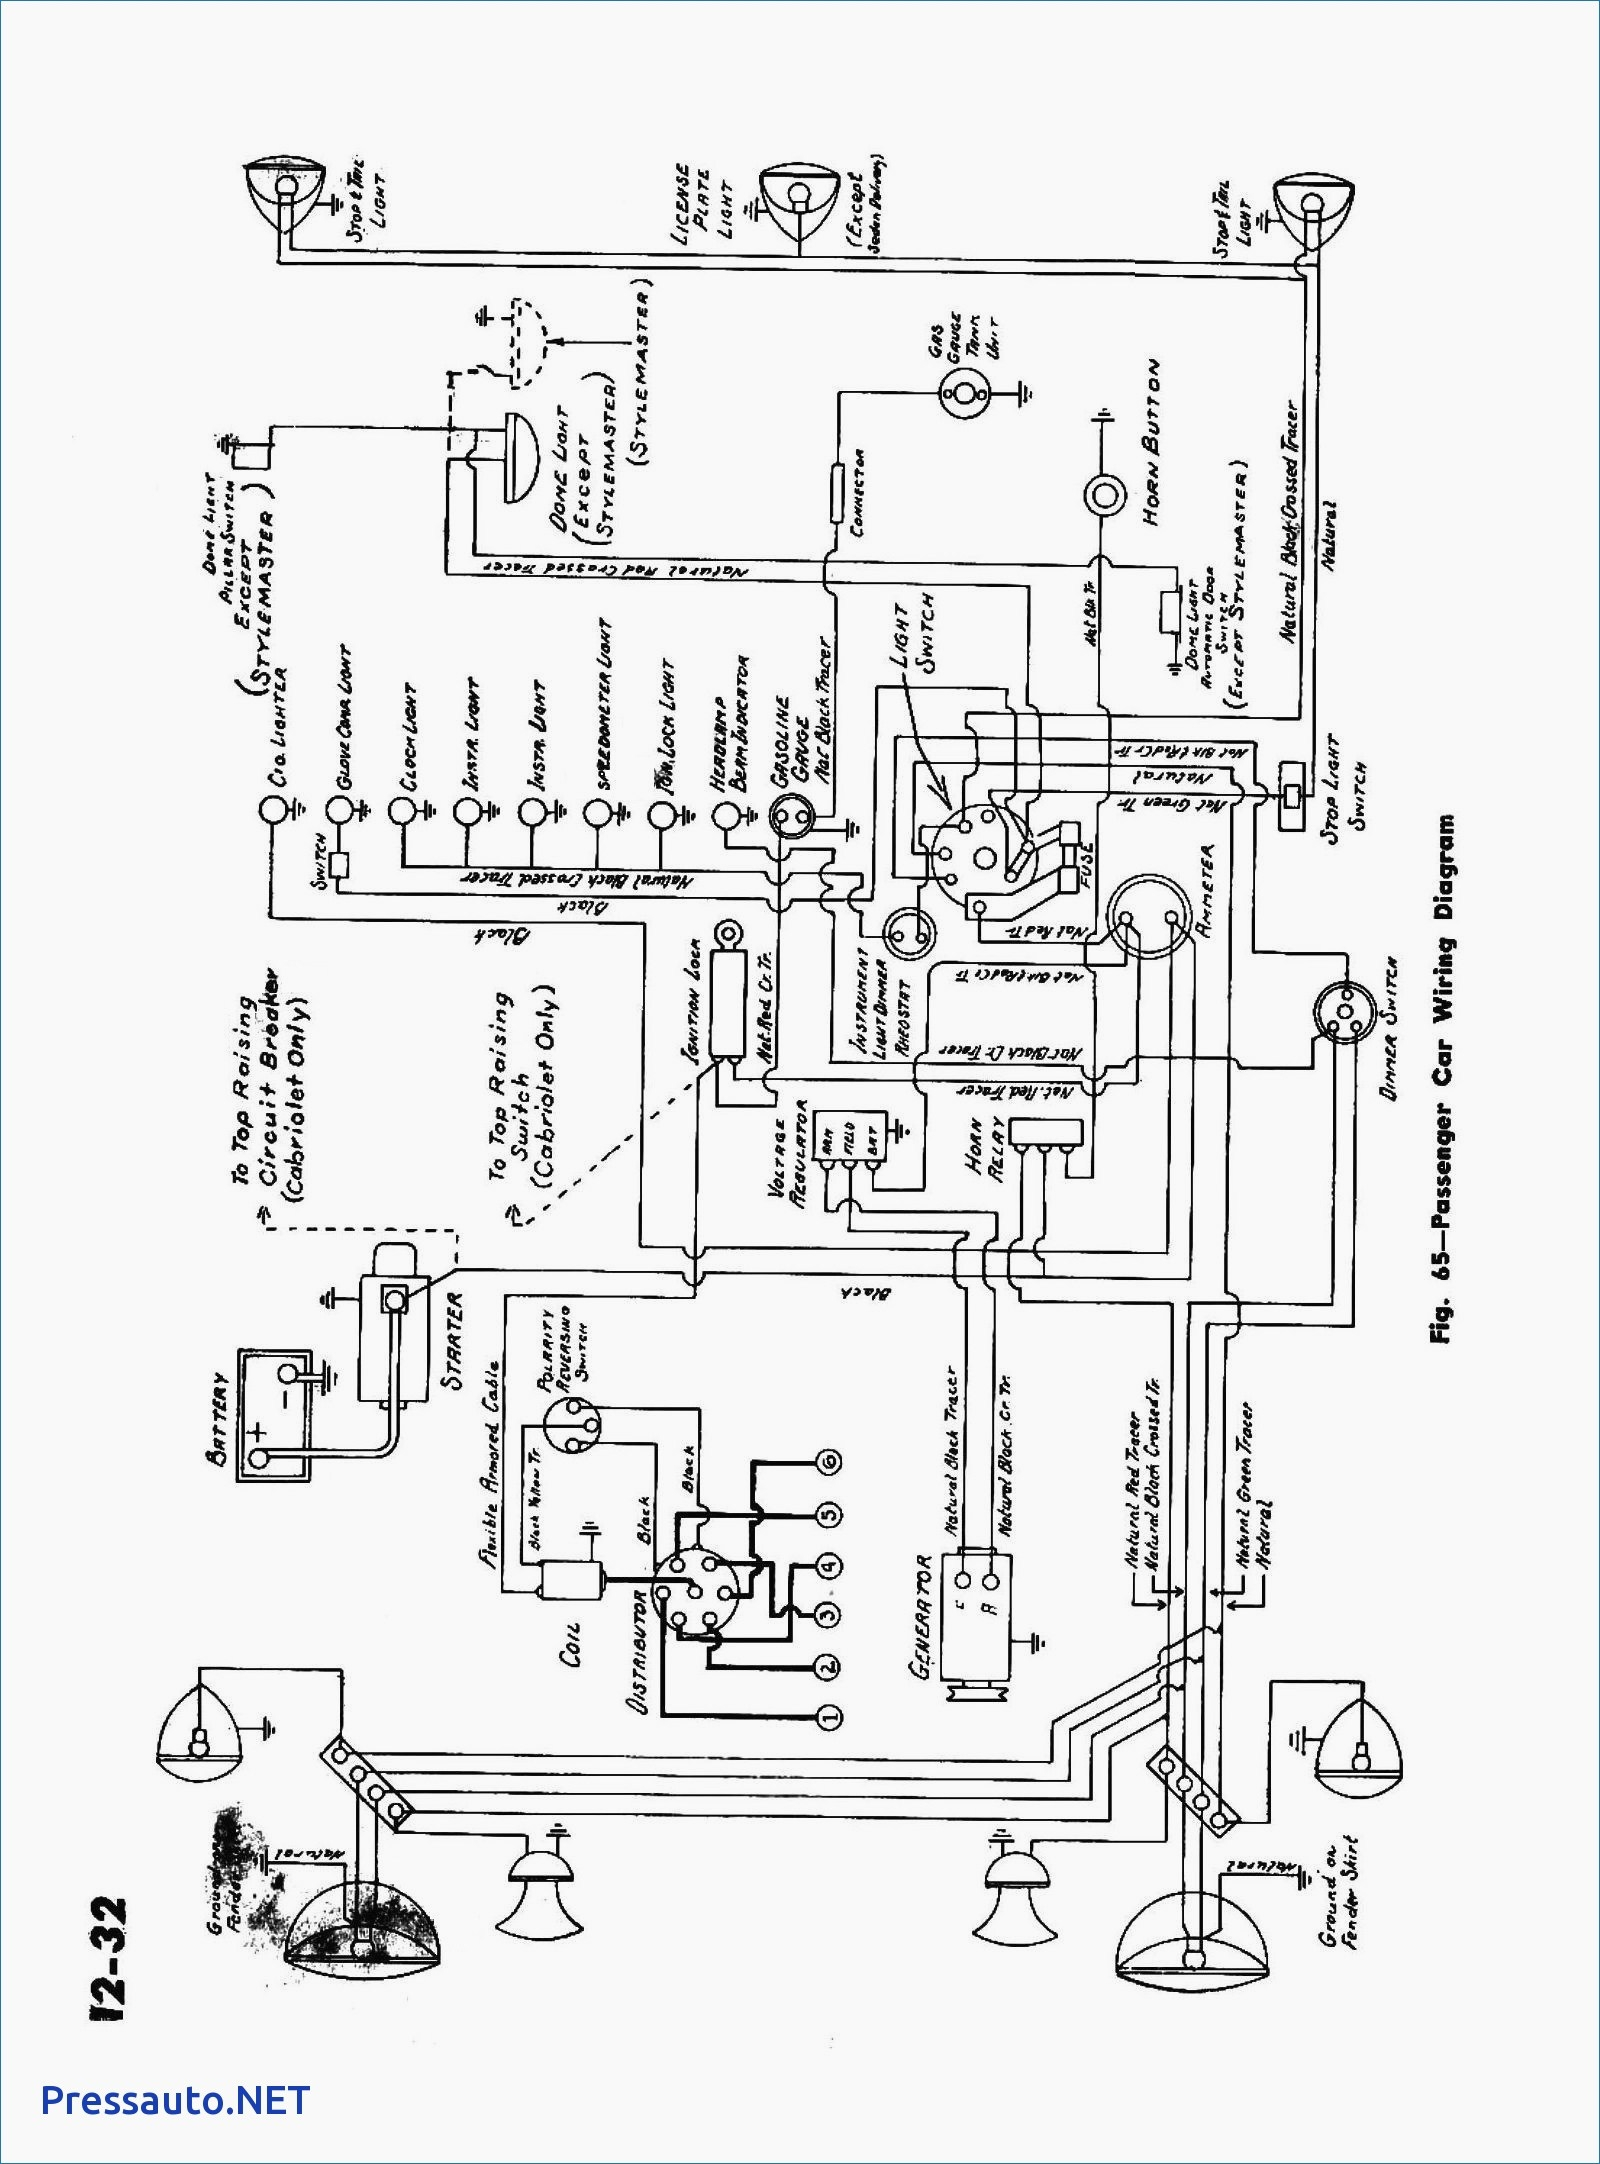 crestron thermostat wiring diagram